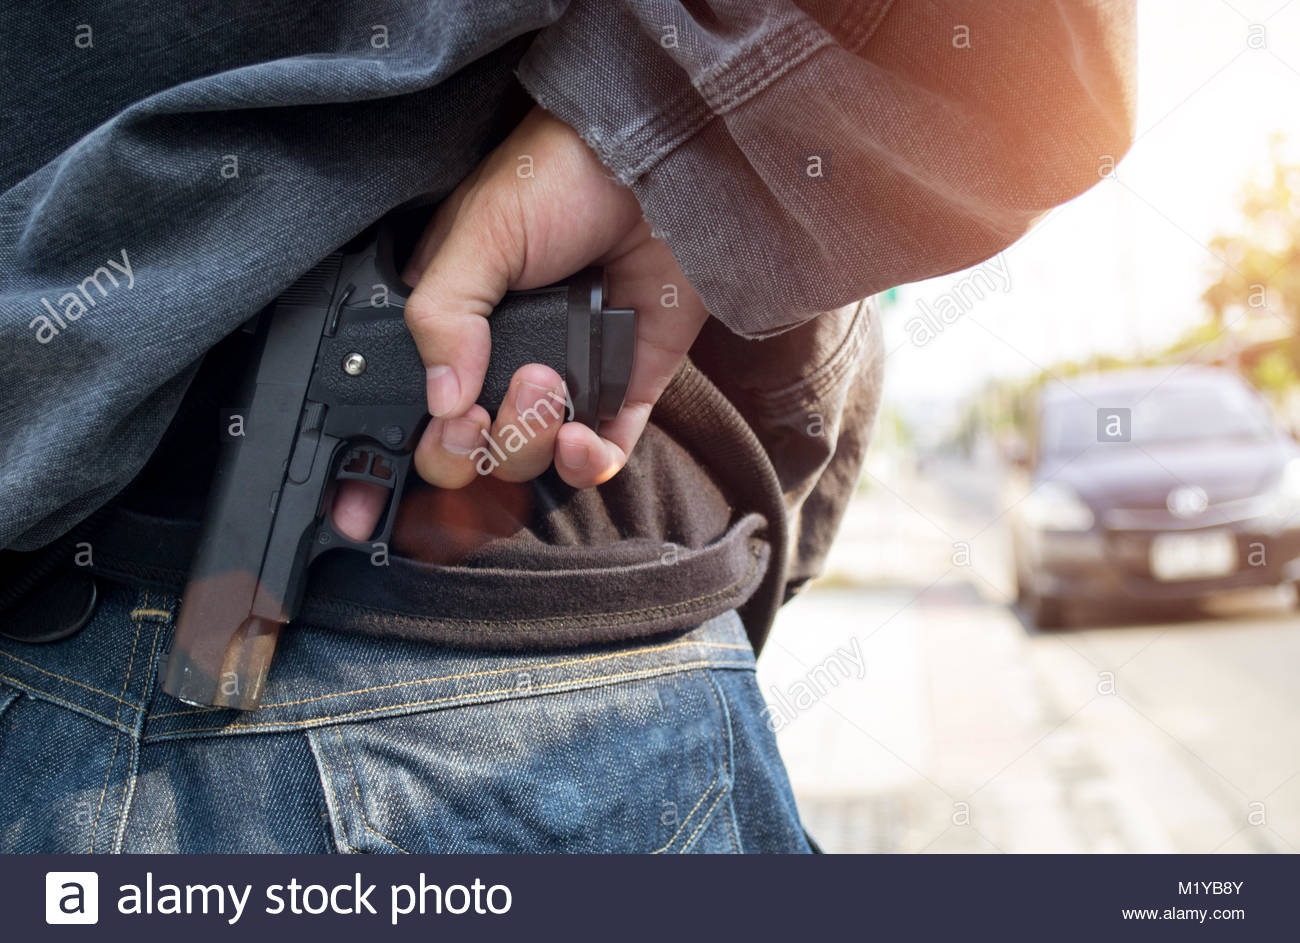 Male thief with pistol trying to steal car - Stock Image